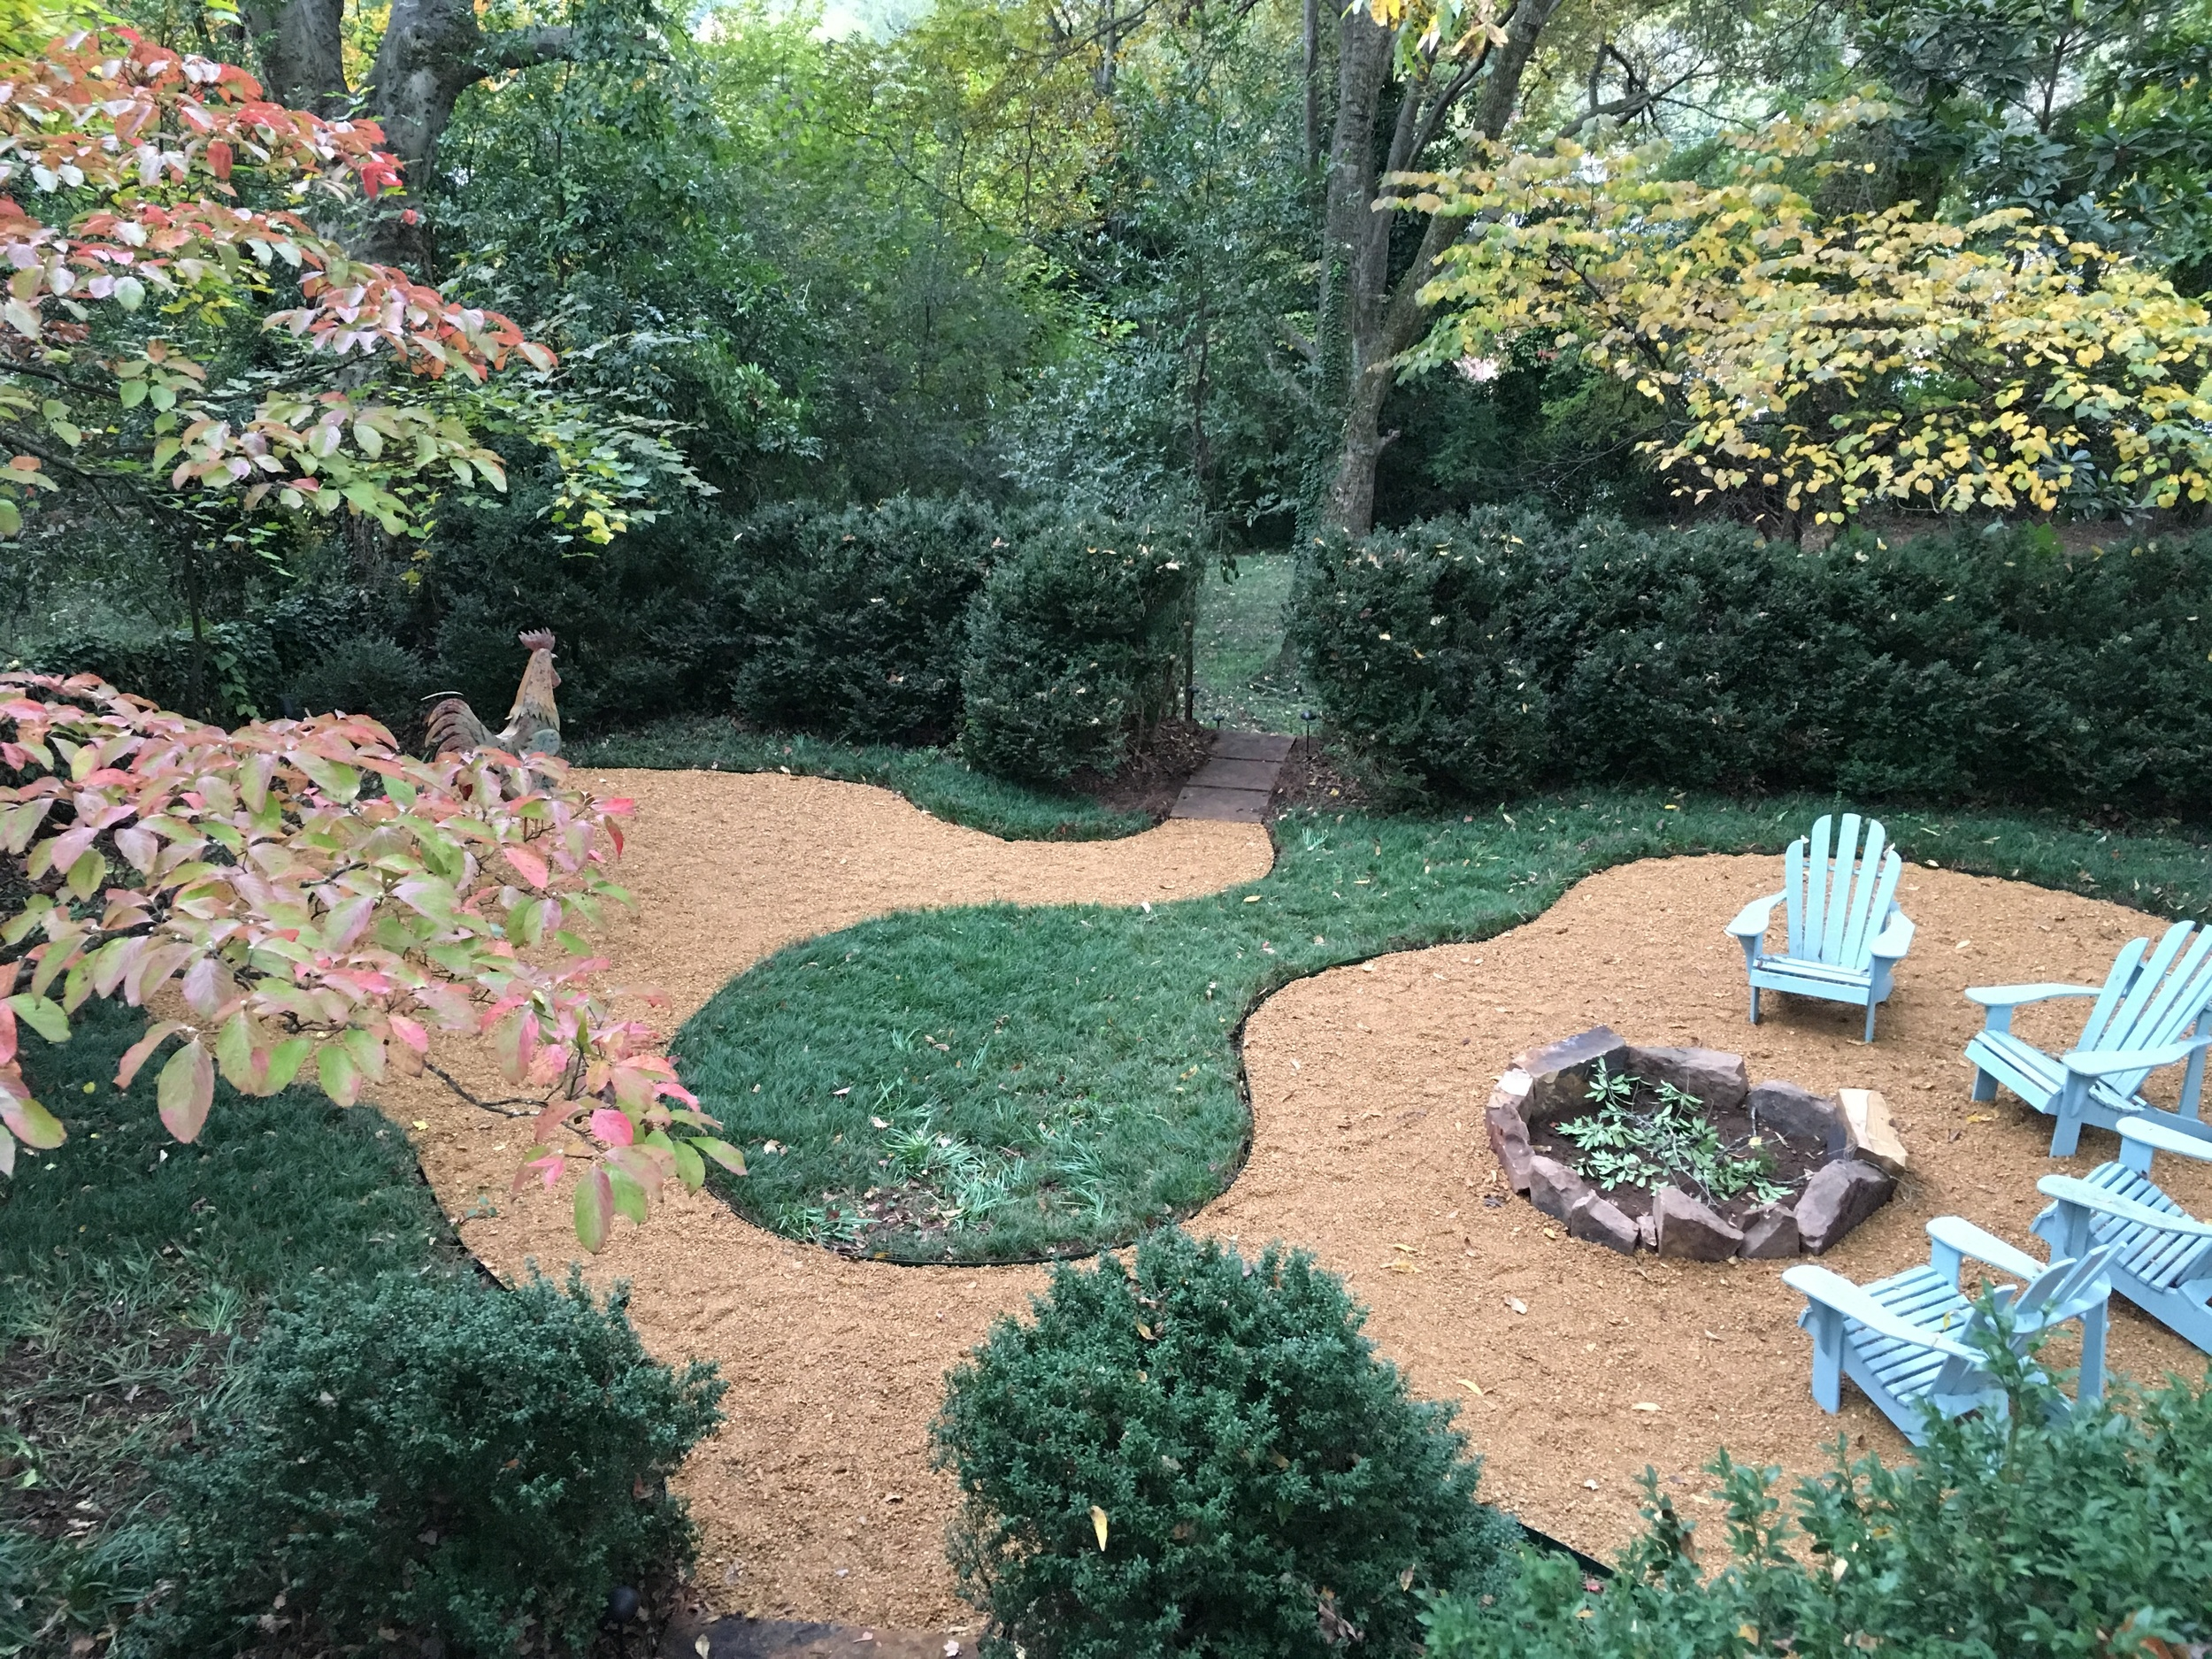 The hardscaping is complete, but we still need to plant flowers and clean up the hedges.